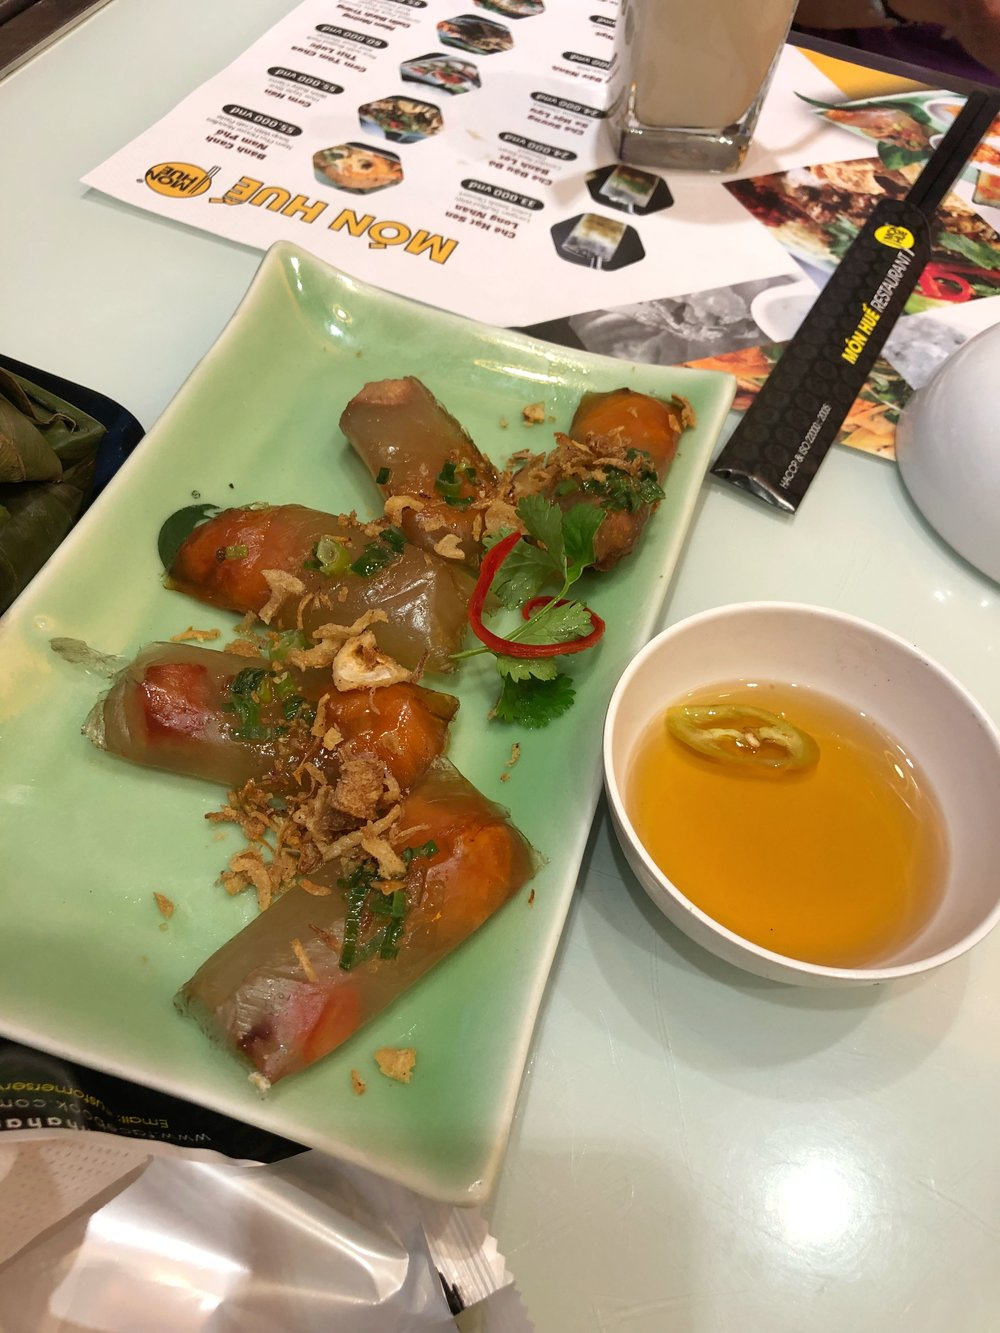 Rice paper wrapped with meat